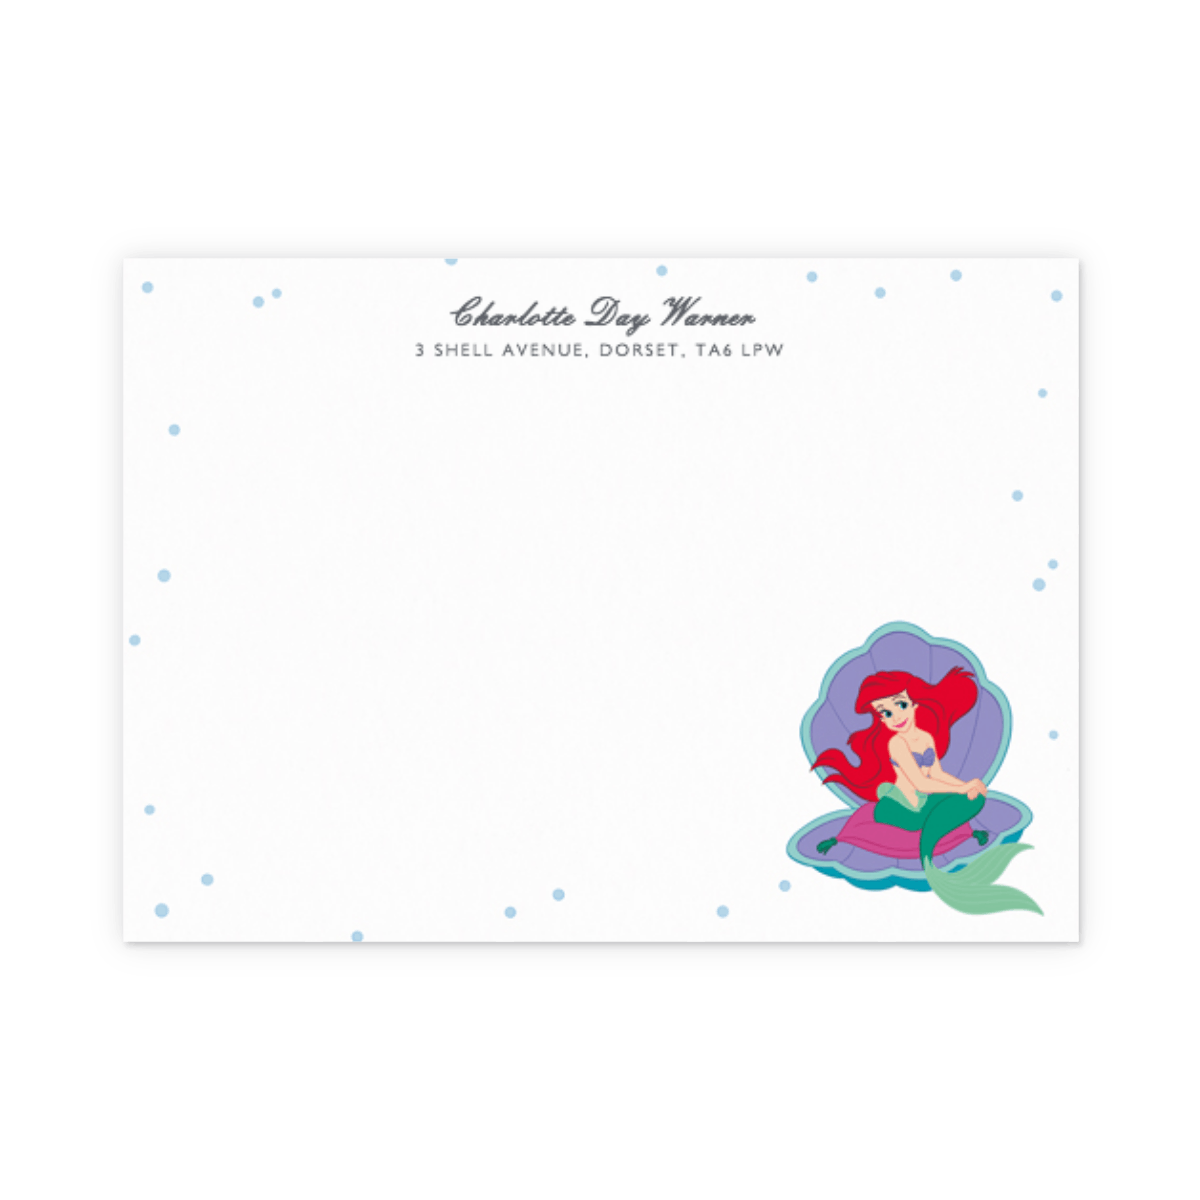 Https%3a%2f%2fwww.papier.com%2fproduct image%2f35332%2f10%2fthe little mermaid 8834 front 1551207869.png?ixlib=rb 1.1